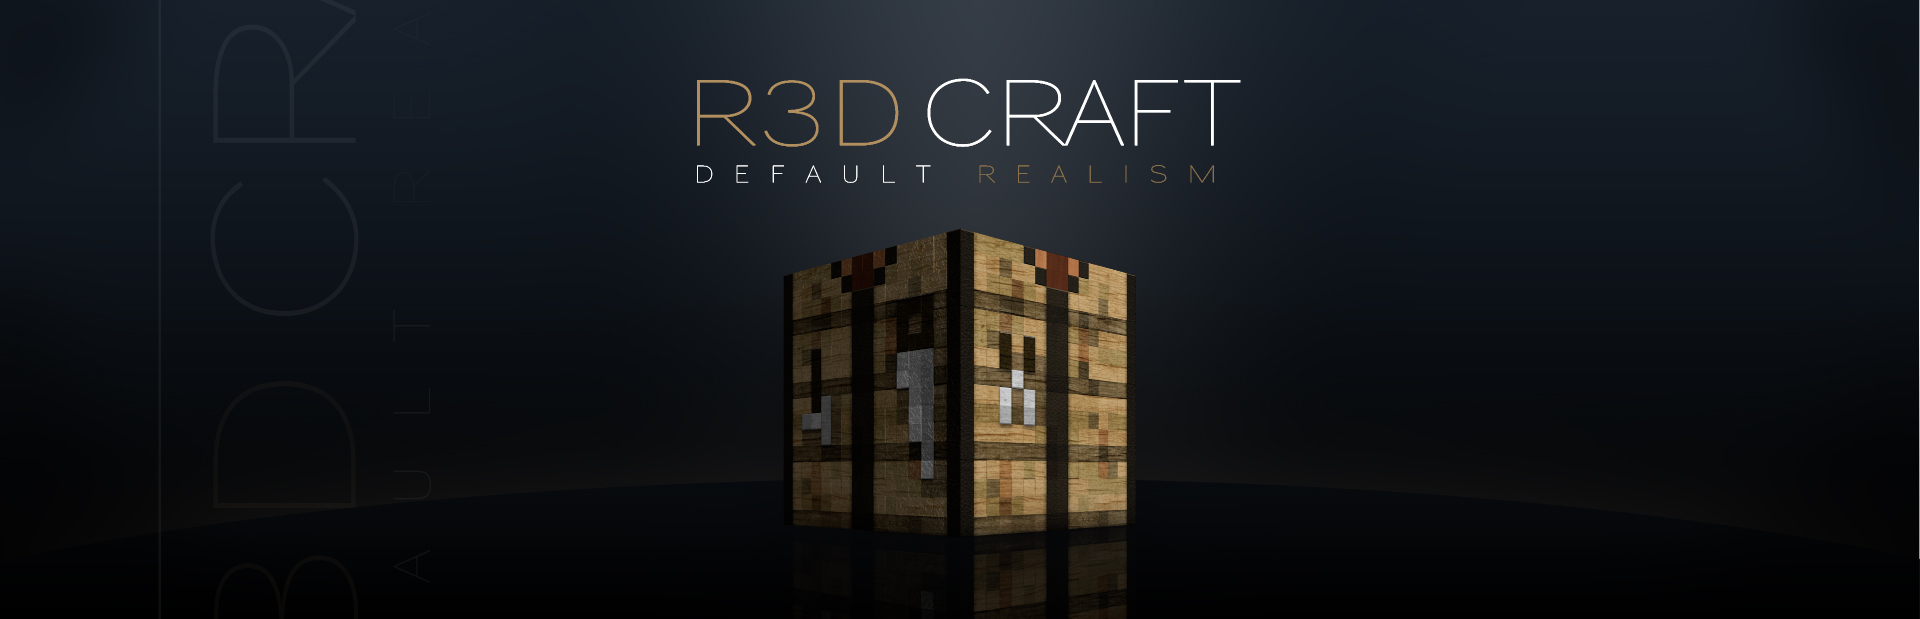 3f398  R3D Craft [1.7.2/1.6.4] [32x] R3D.CRAFT Texture Pack Download